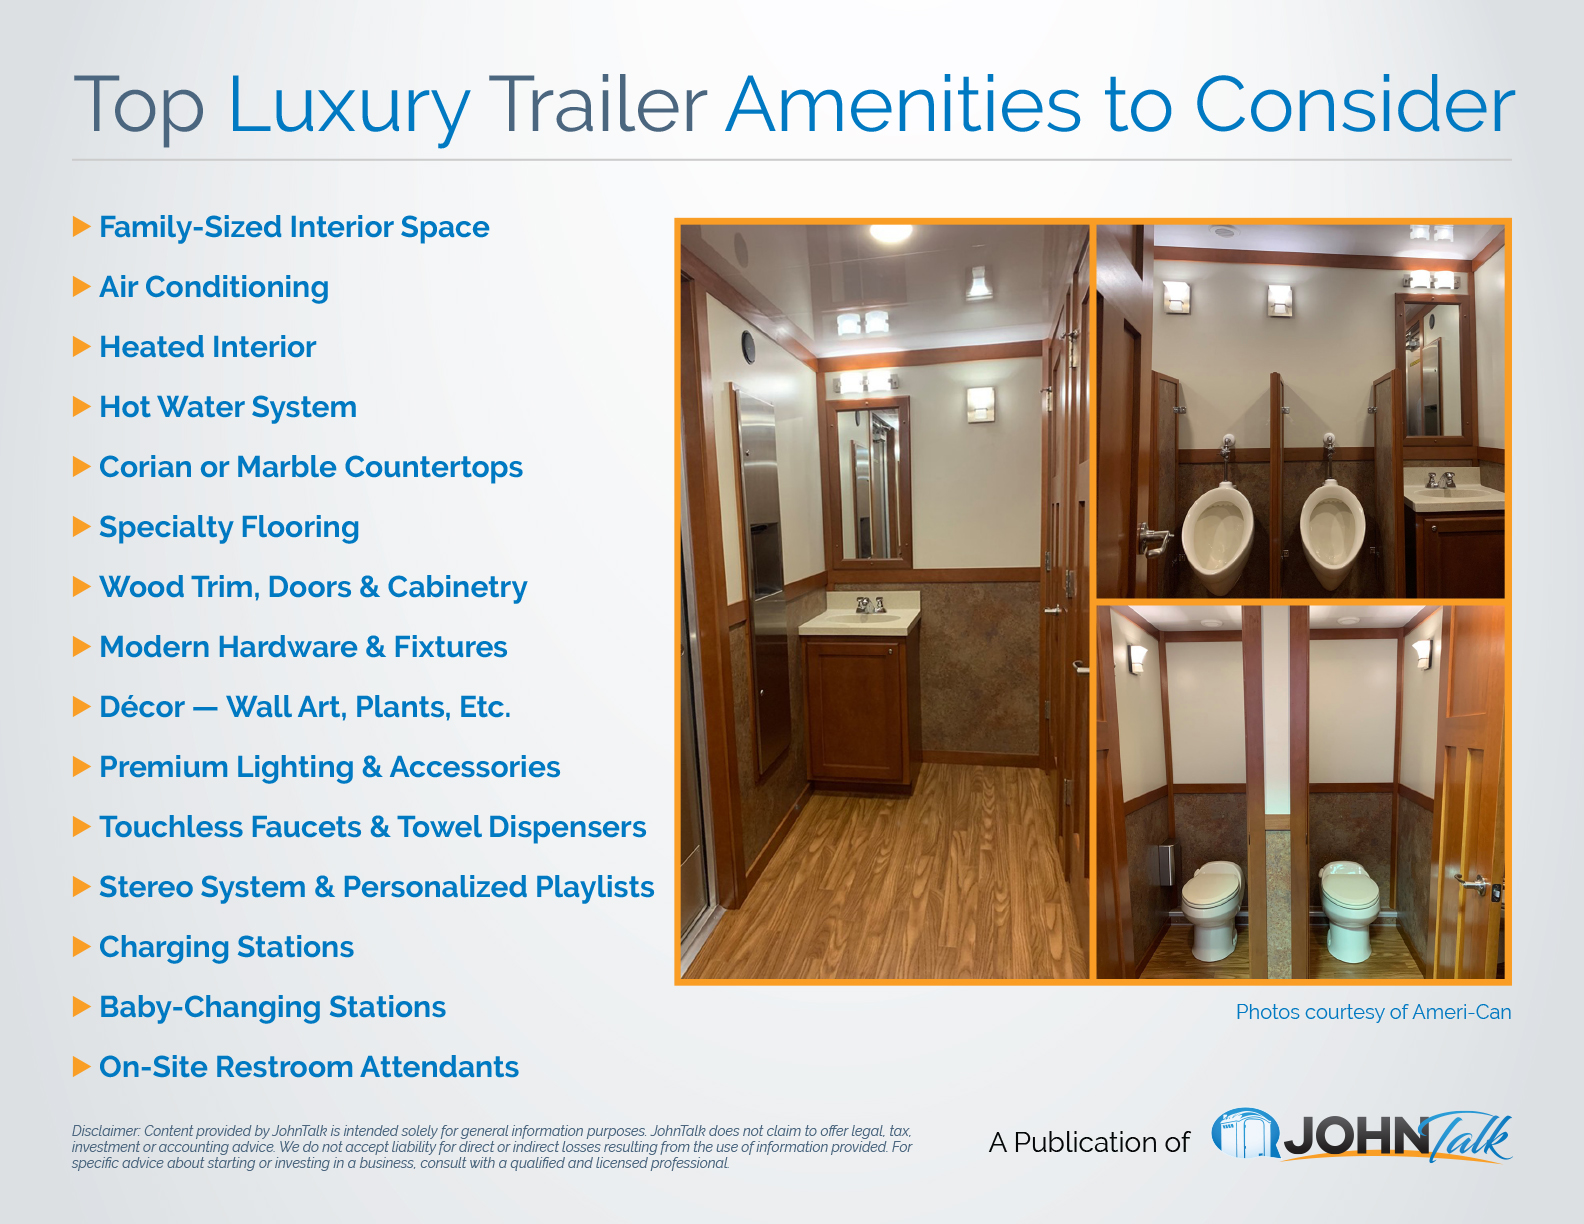 Top Luxury Trailer Amenities to Consider